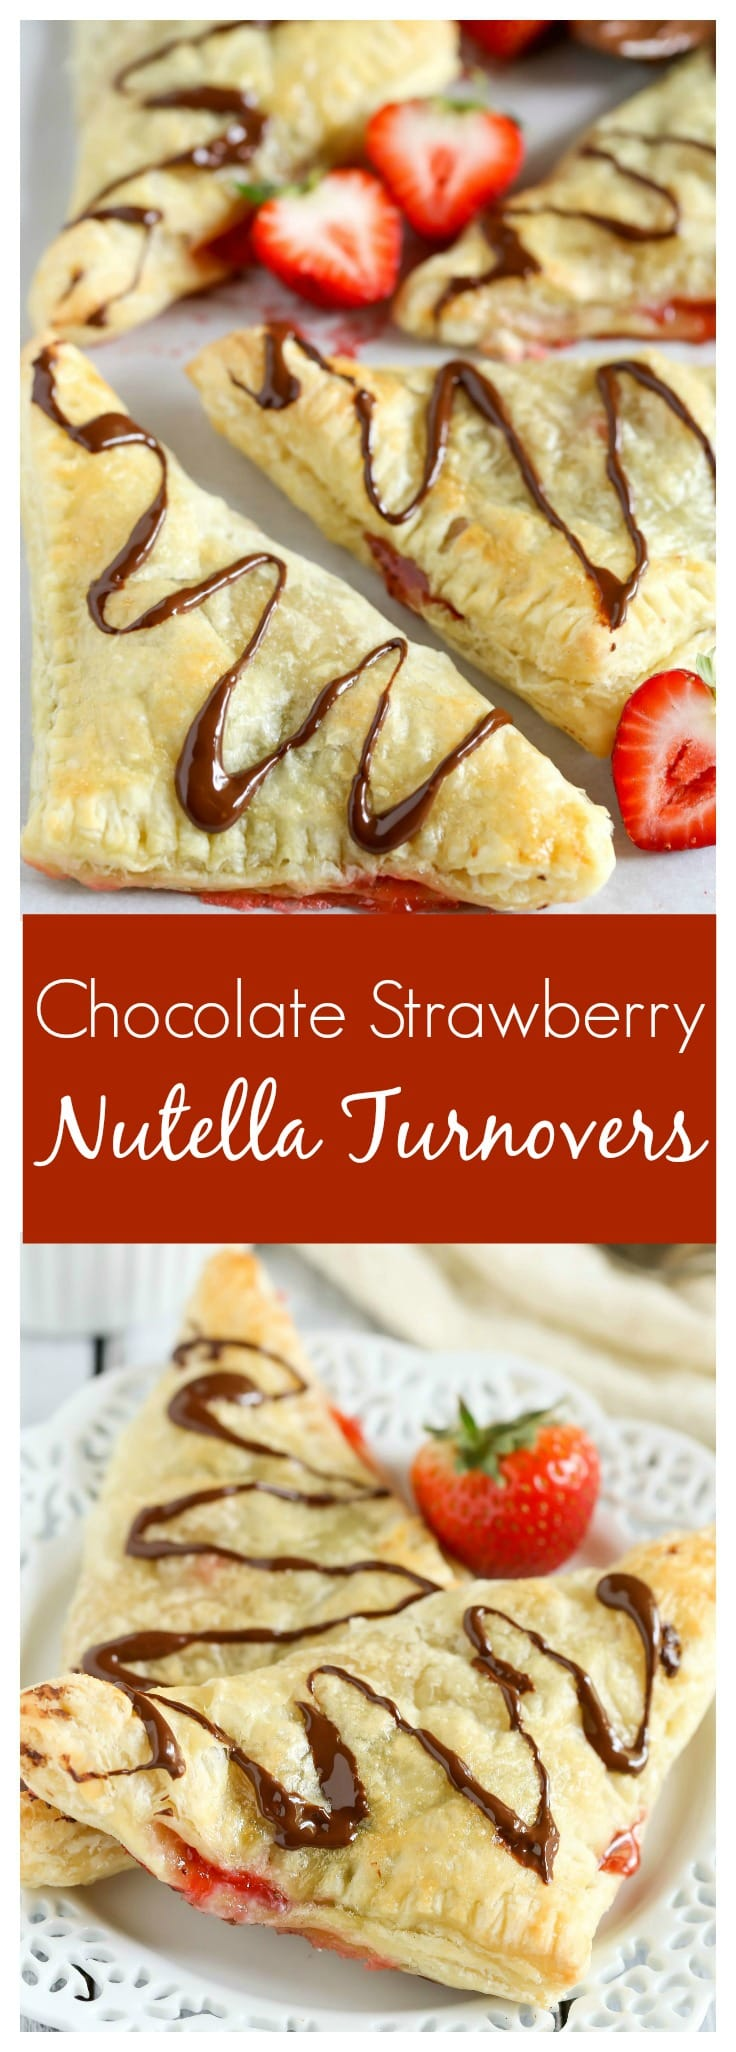 Puff pastry stuffed with chocolate, Nutella, and fresh strawberries. These Chocolate Strawberry Nutella Turnovers make one delicious and decadent dessert!